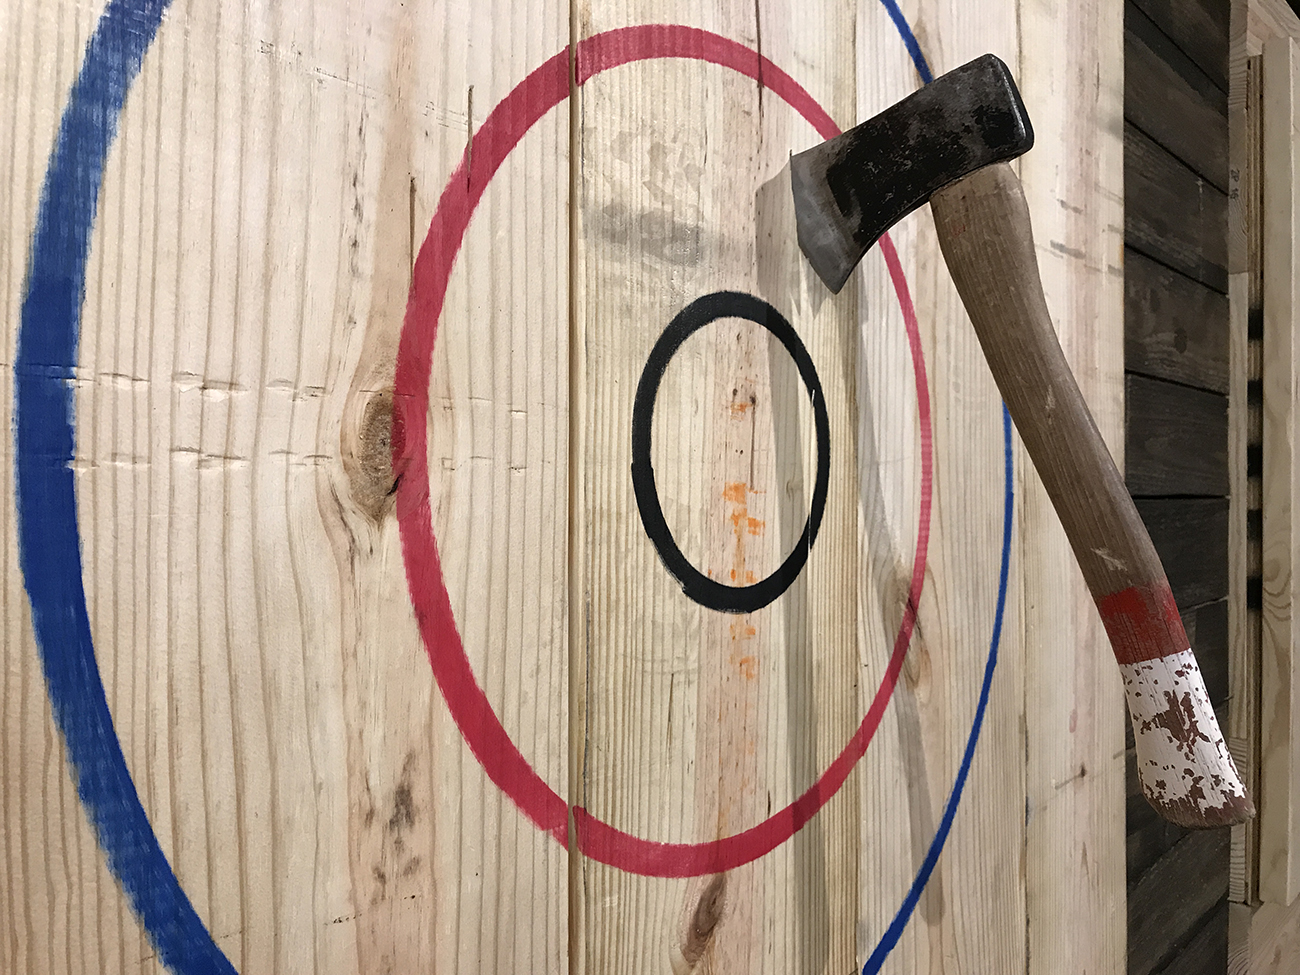 Lumberjaxe, the region's first axe-throwing facility, is gearing up for an early November opening. Here's your first look inside.